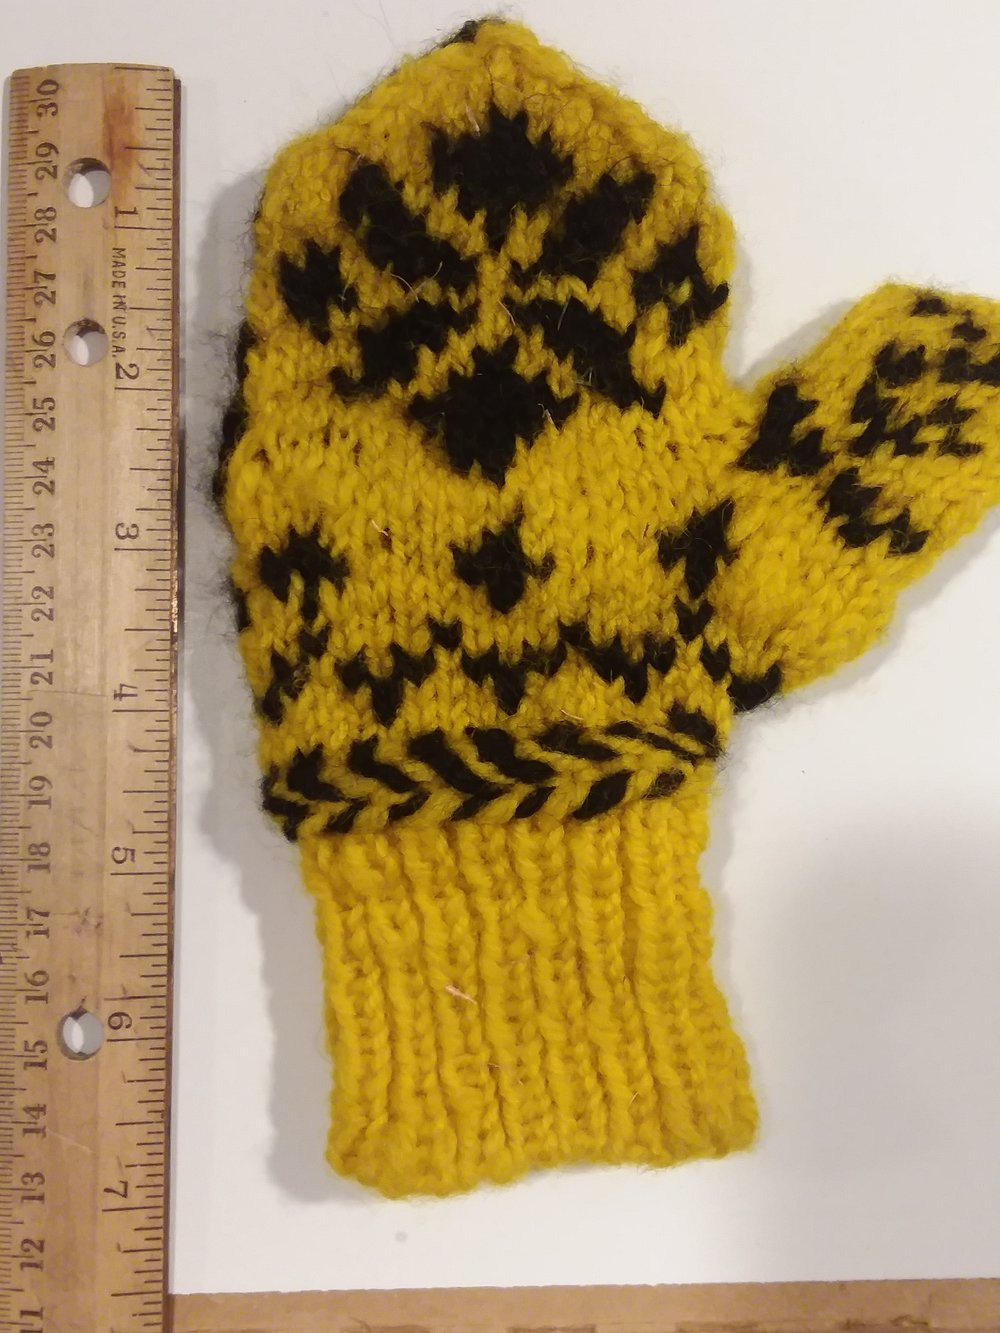 Here you can get an idea for gauge. You can also see that these mittens would benefit from some blocking.